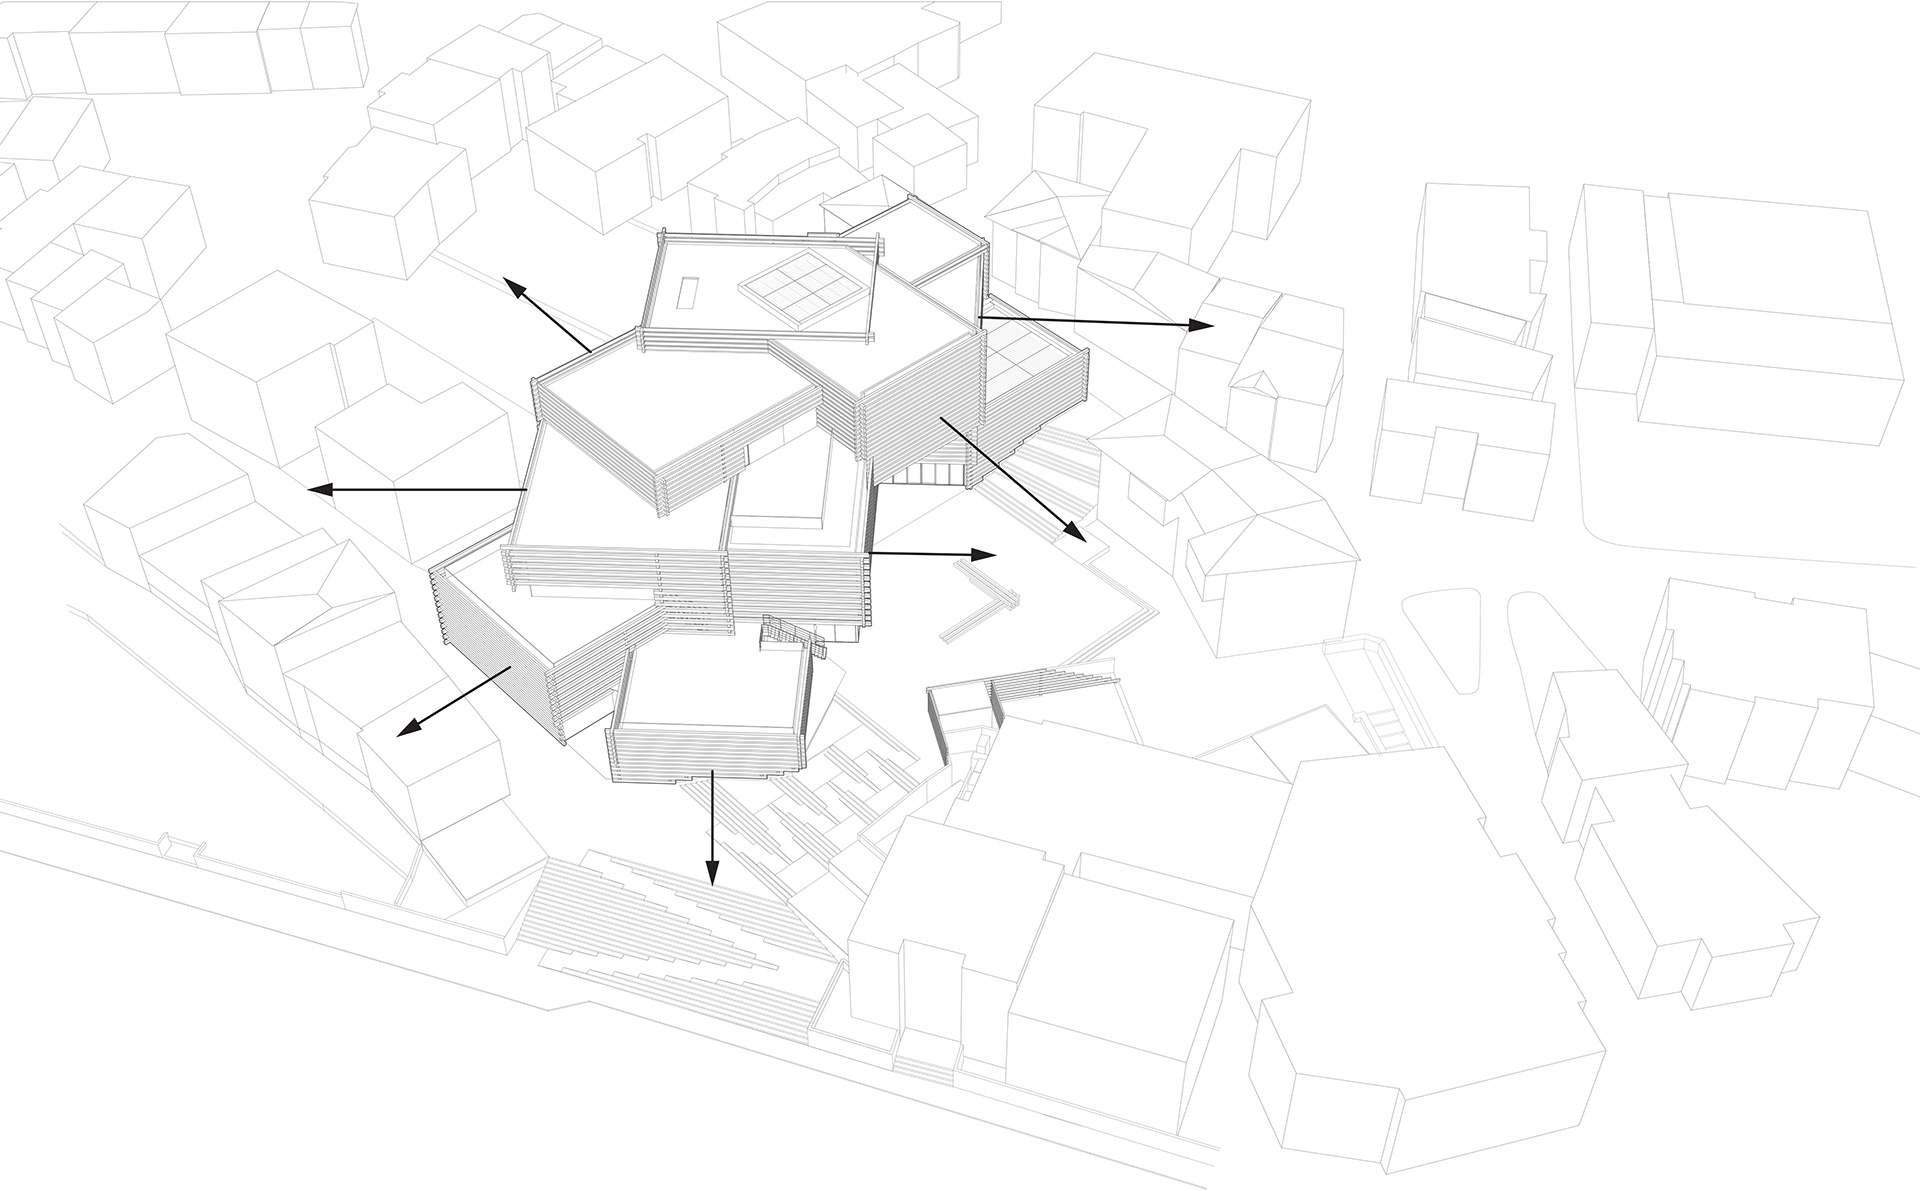 Views from the OMM - axonometric| Odunpazari Modern Museum| Kengo Kuma and Associates | STIR